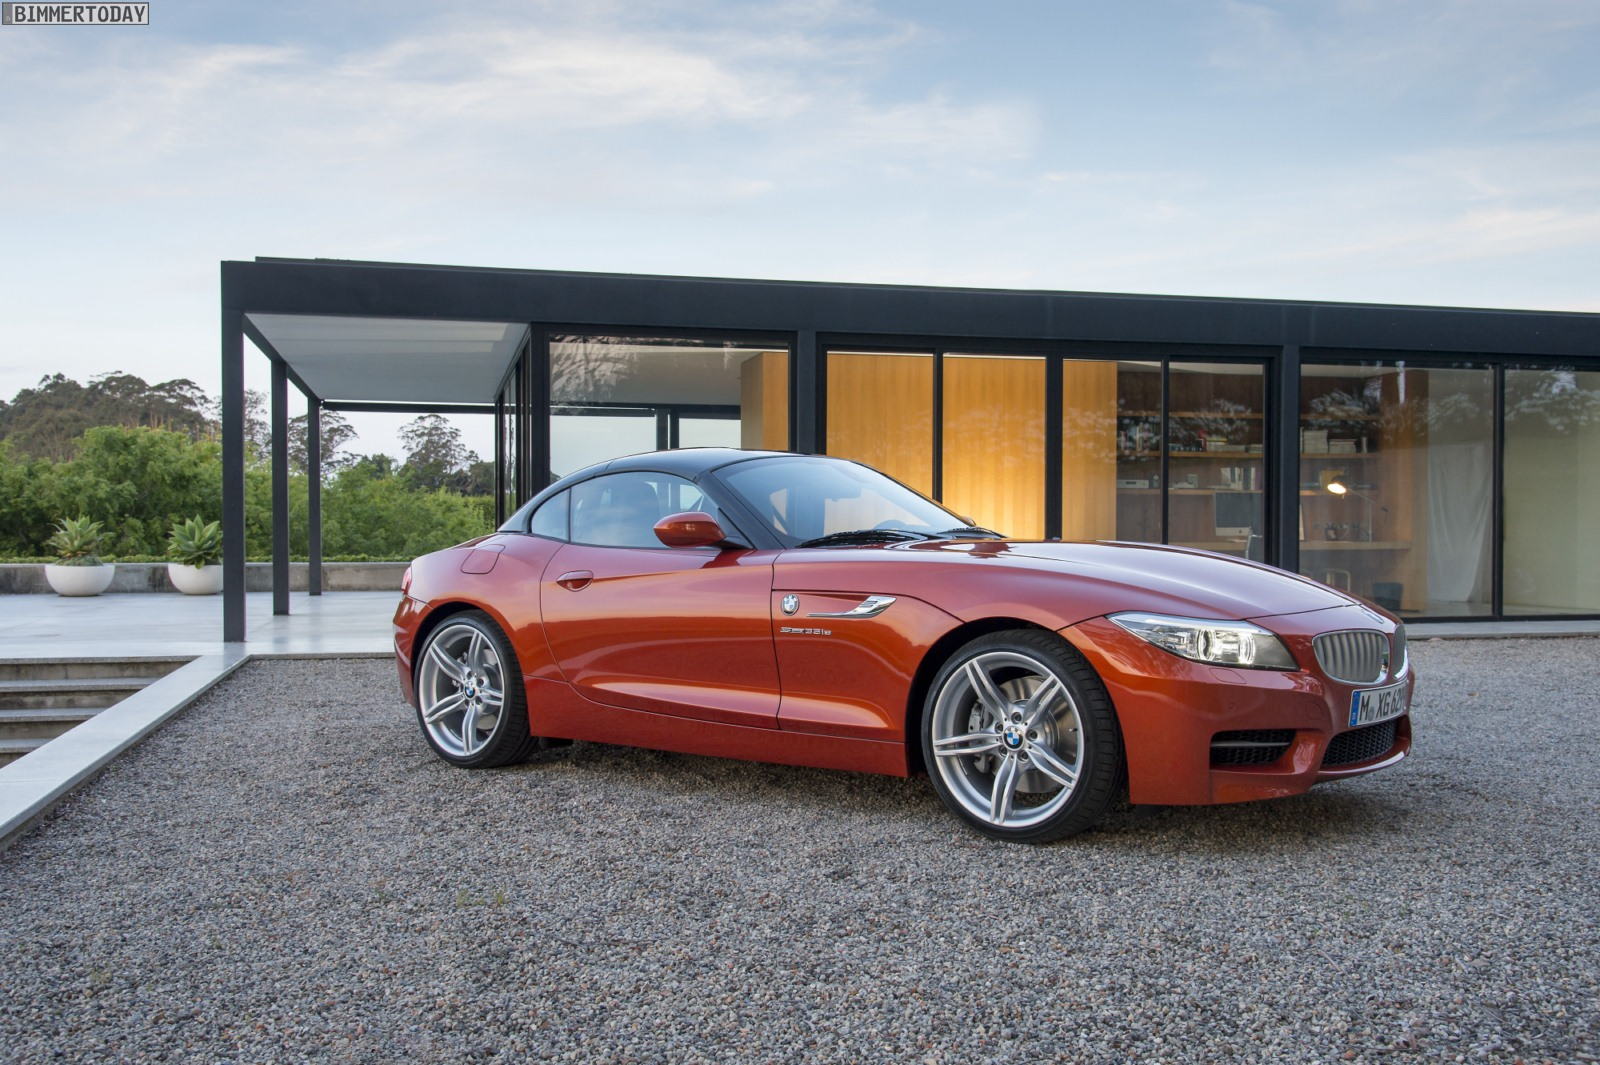 bmw z4 e89 lci video zeigt facelift vor premiere auf detroit auto show. Black Bedroom Furniture Sets. Home Design Ideas